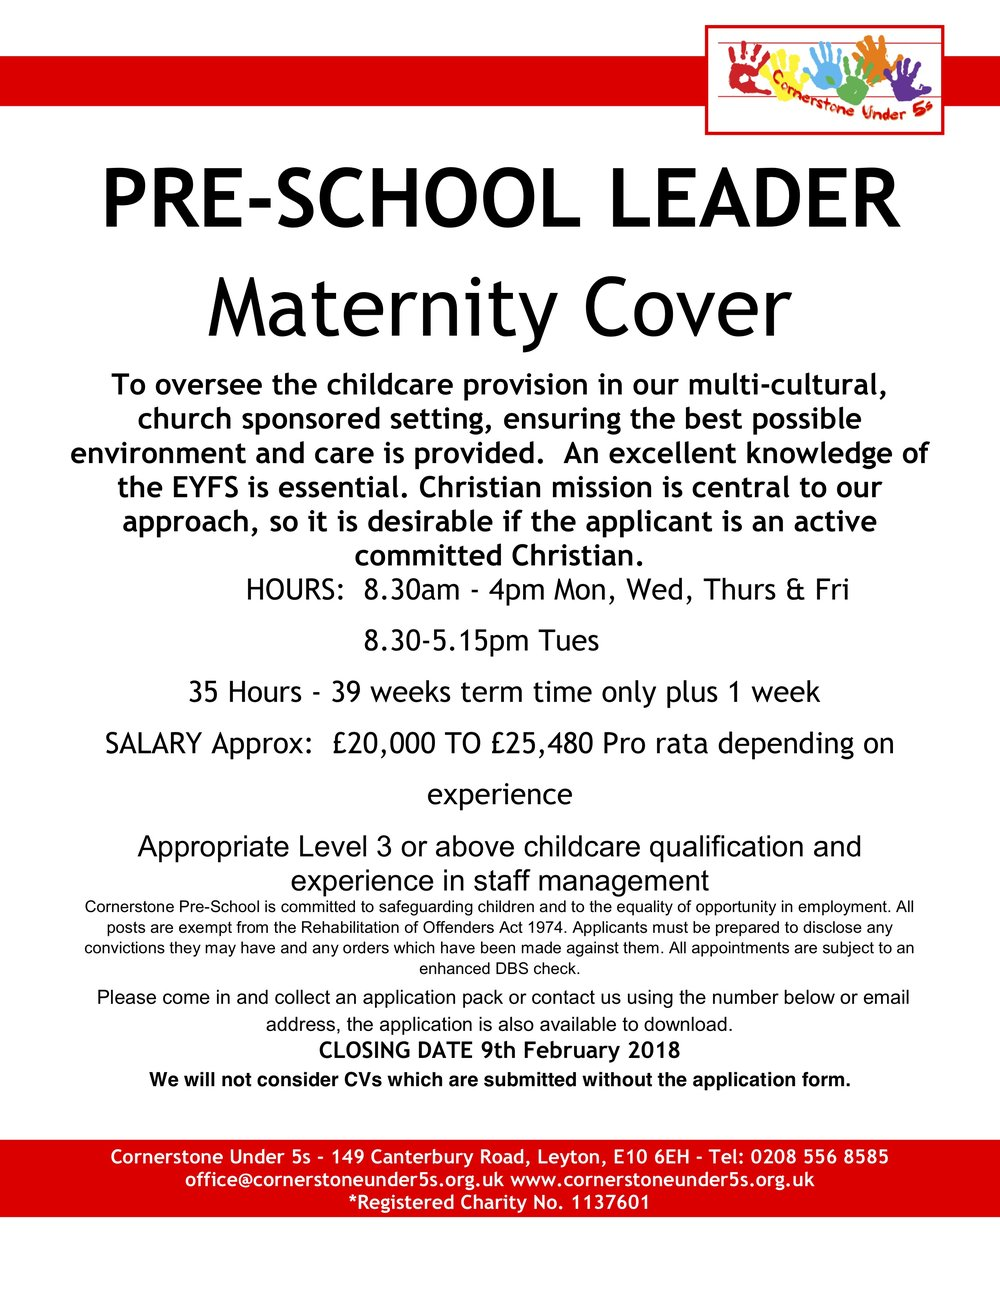 Maternity cover job vacancy 9.1.18.jpg